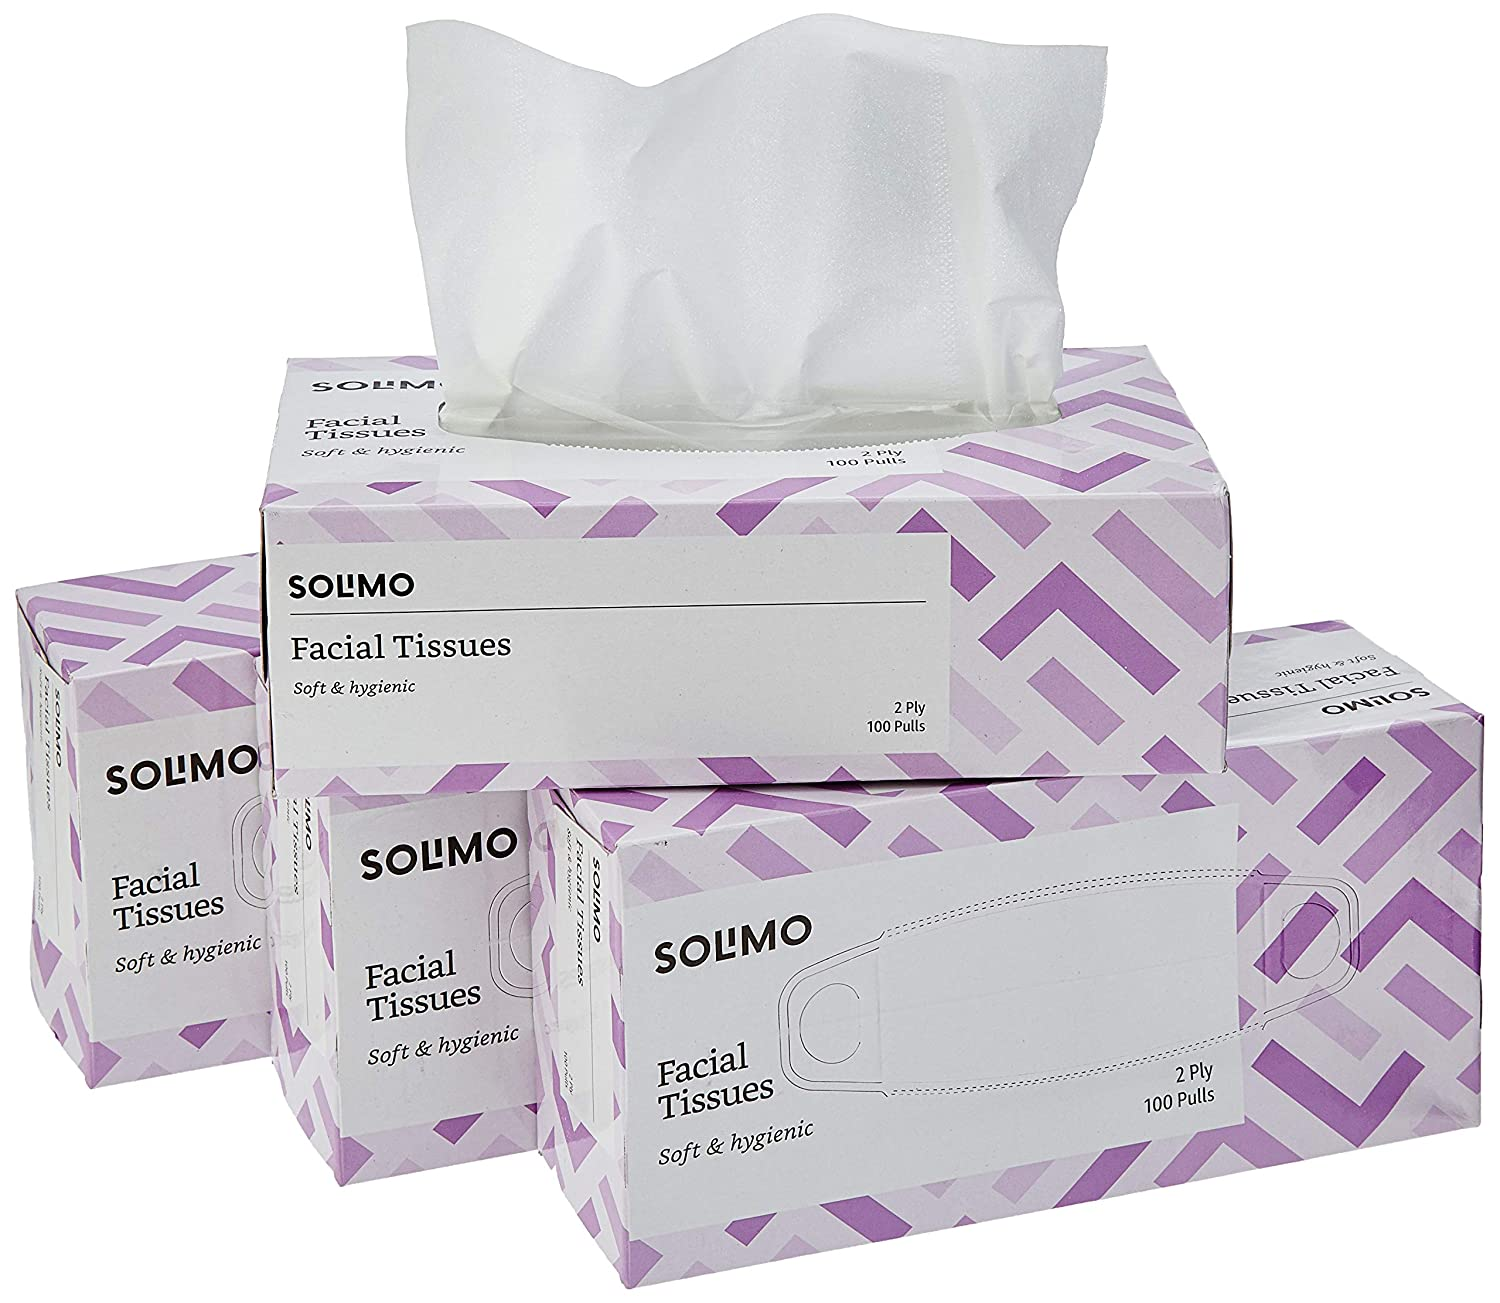 [Apply coupon] Amazon Brand - Solimo 2 Ply Facial Tissues Carton Box - 100 Pulls (Pack of 4)